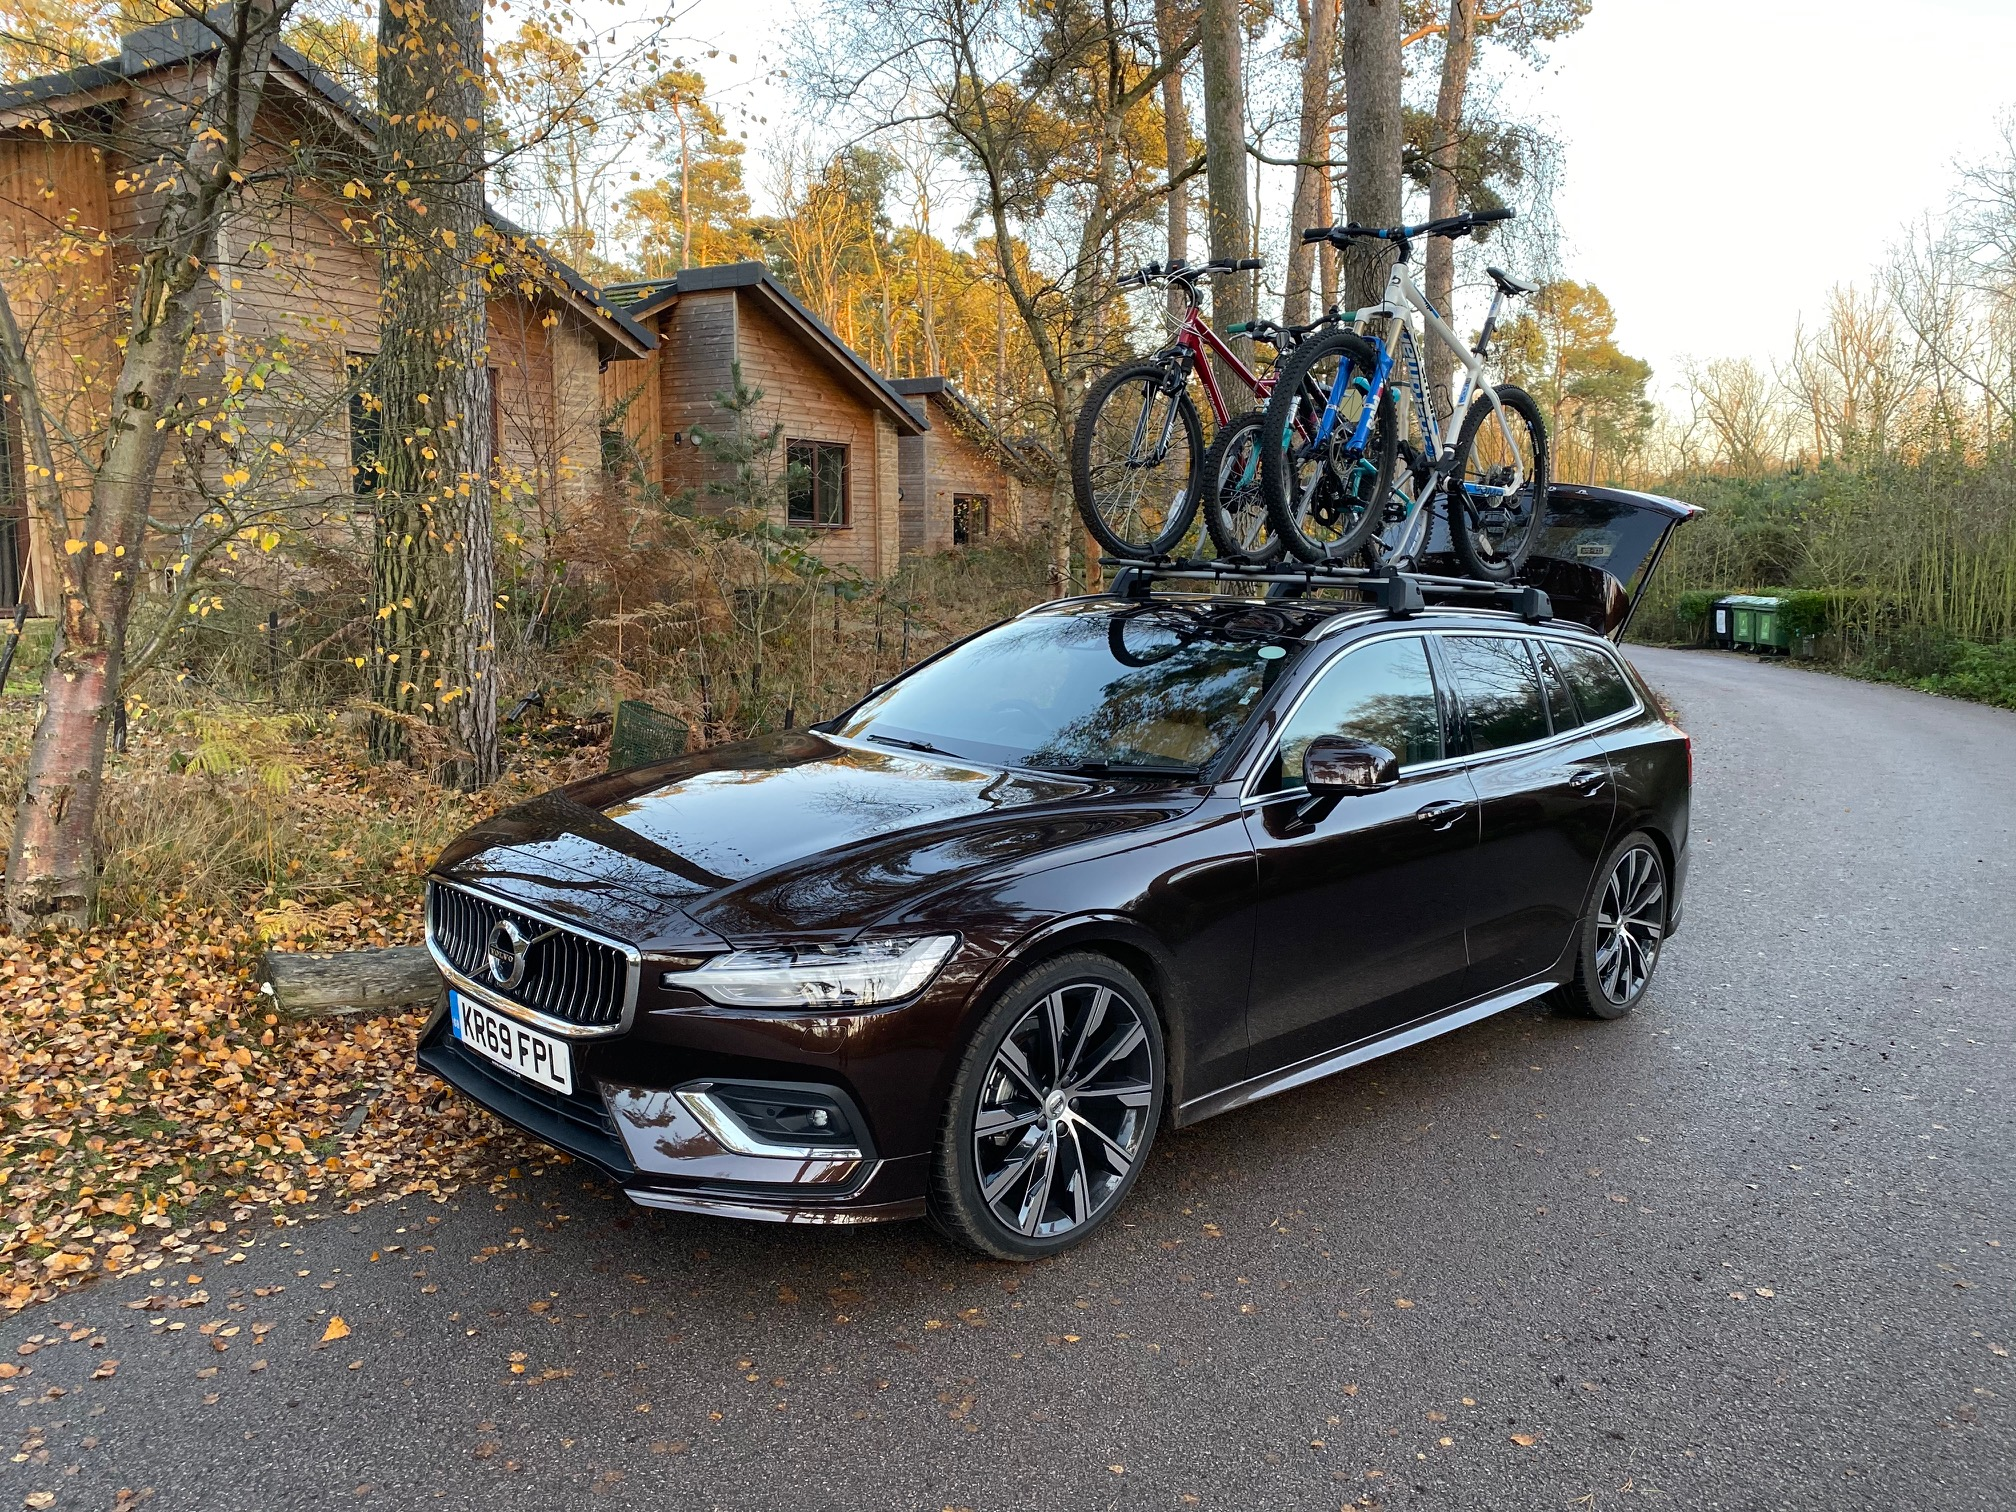 The V60's bike rack proved immensely popular